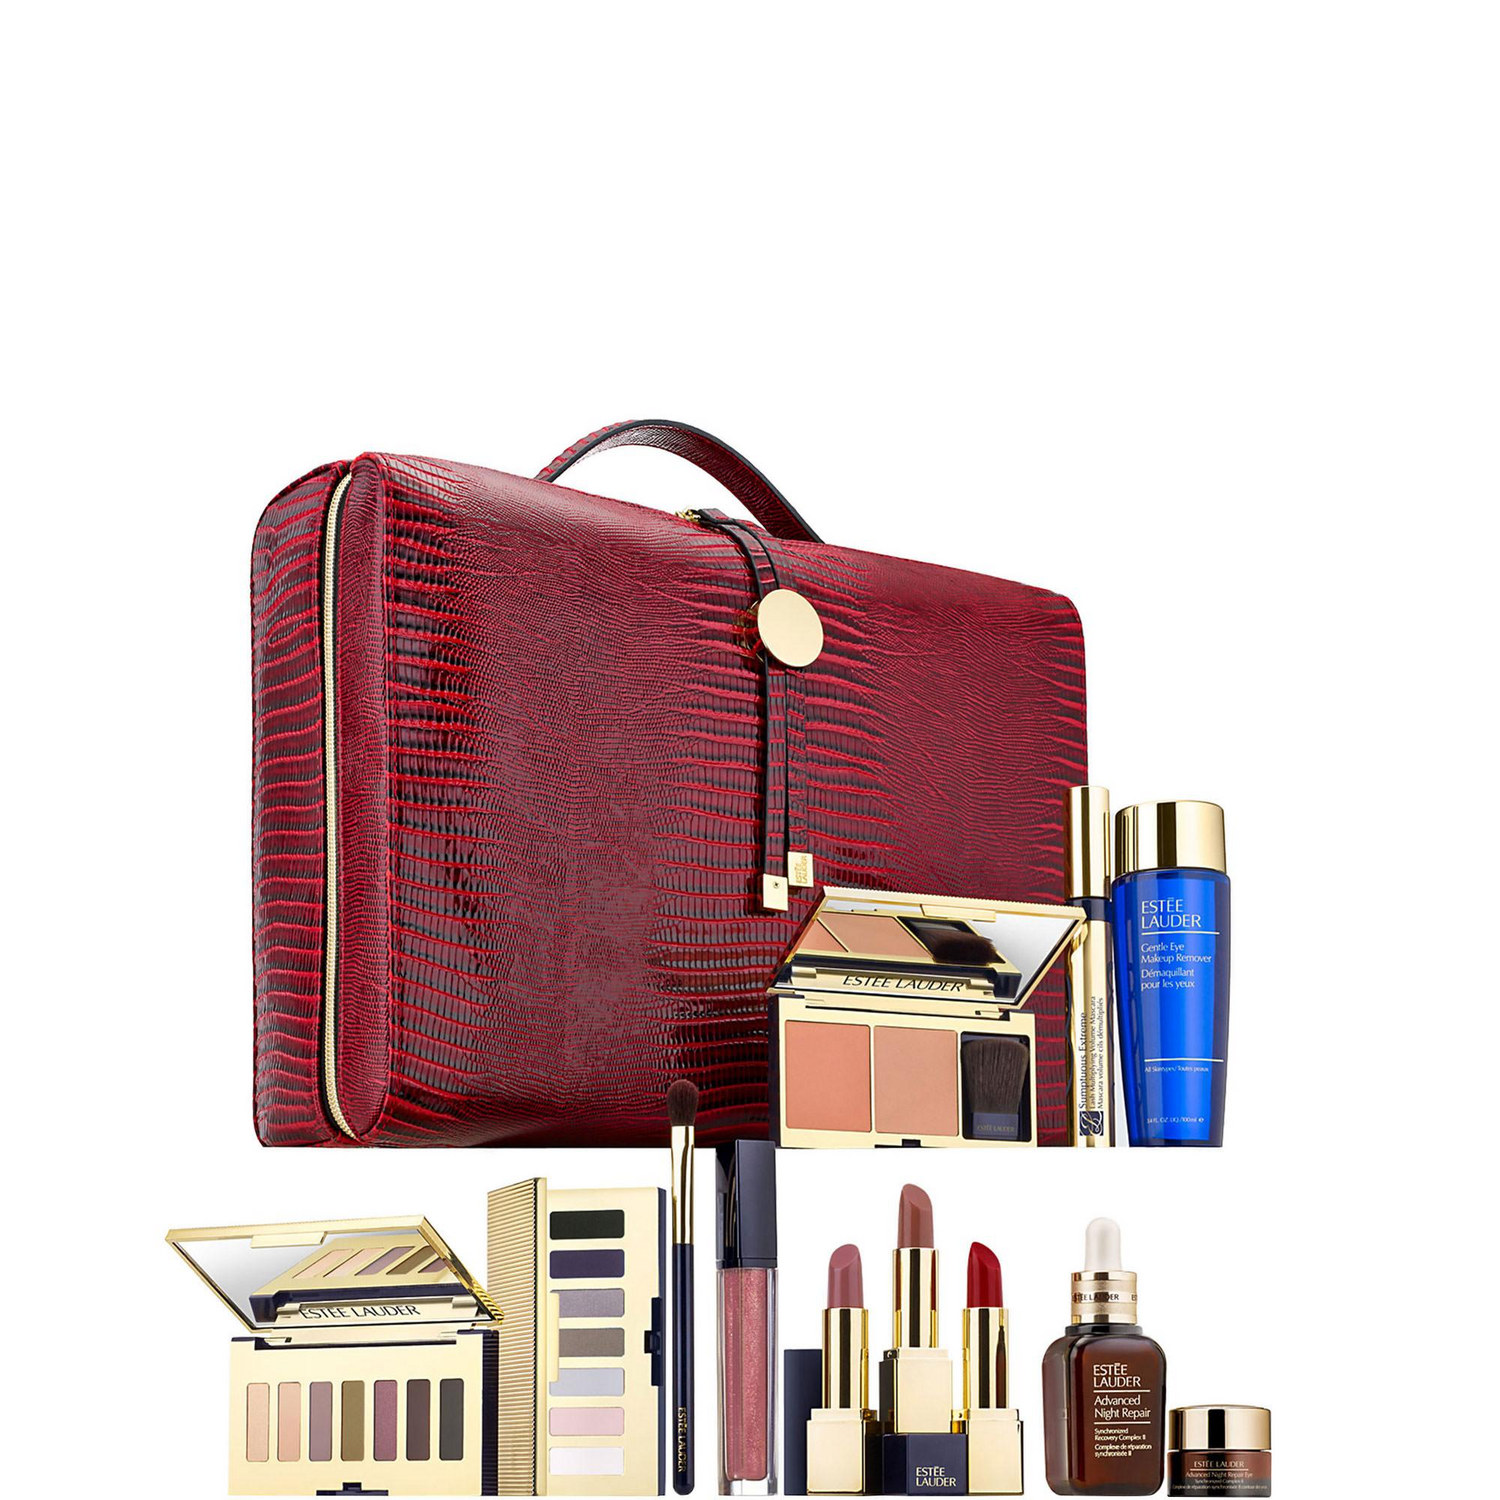 ffc65fb1455 ESTEE LAUDER The Blockbuster Collection